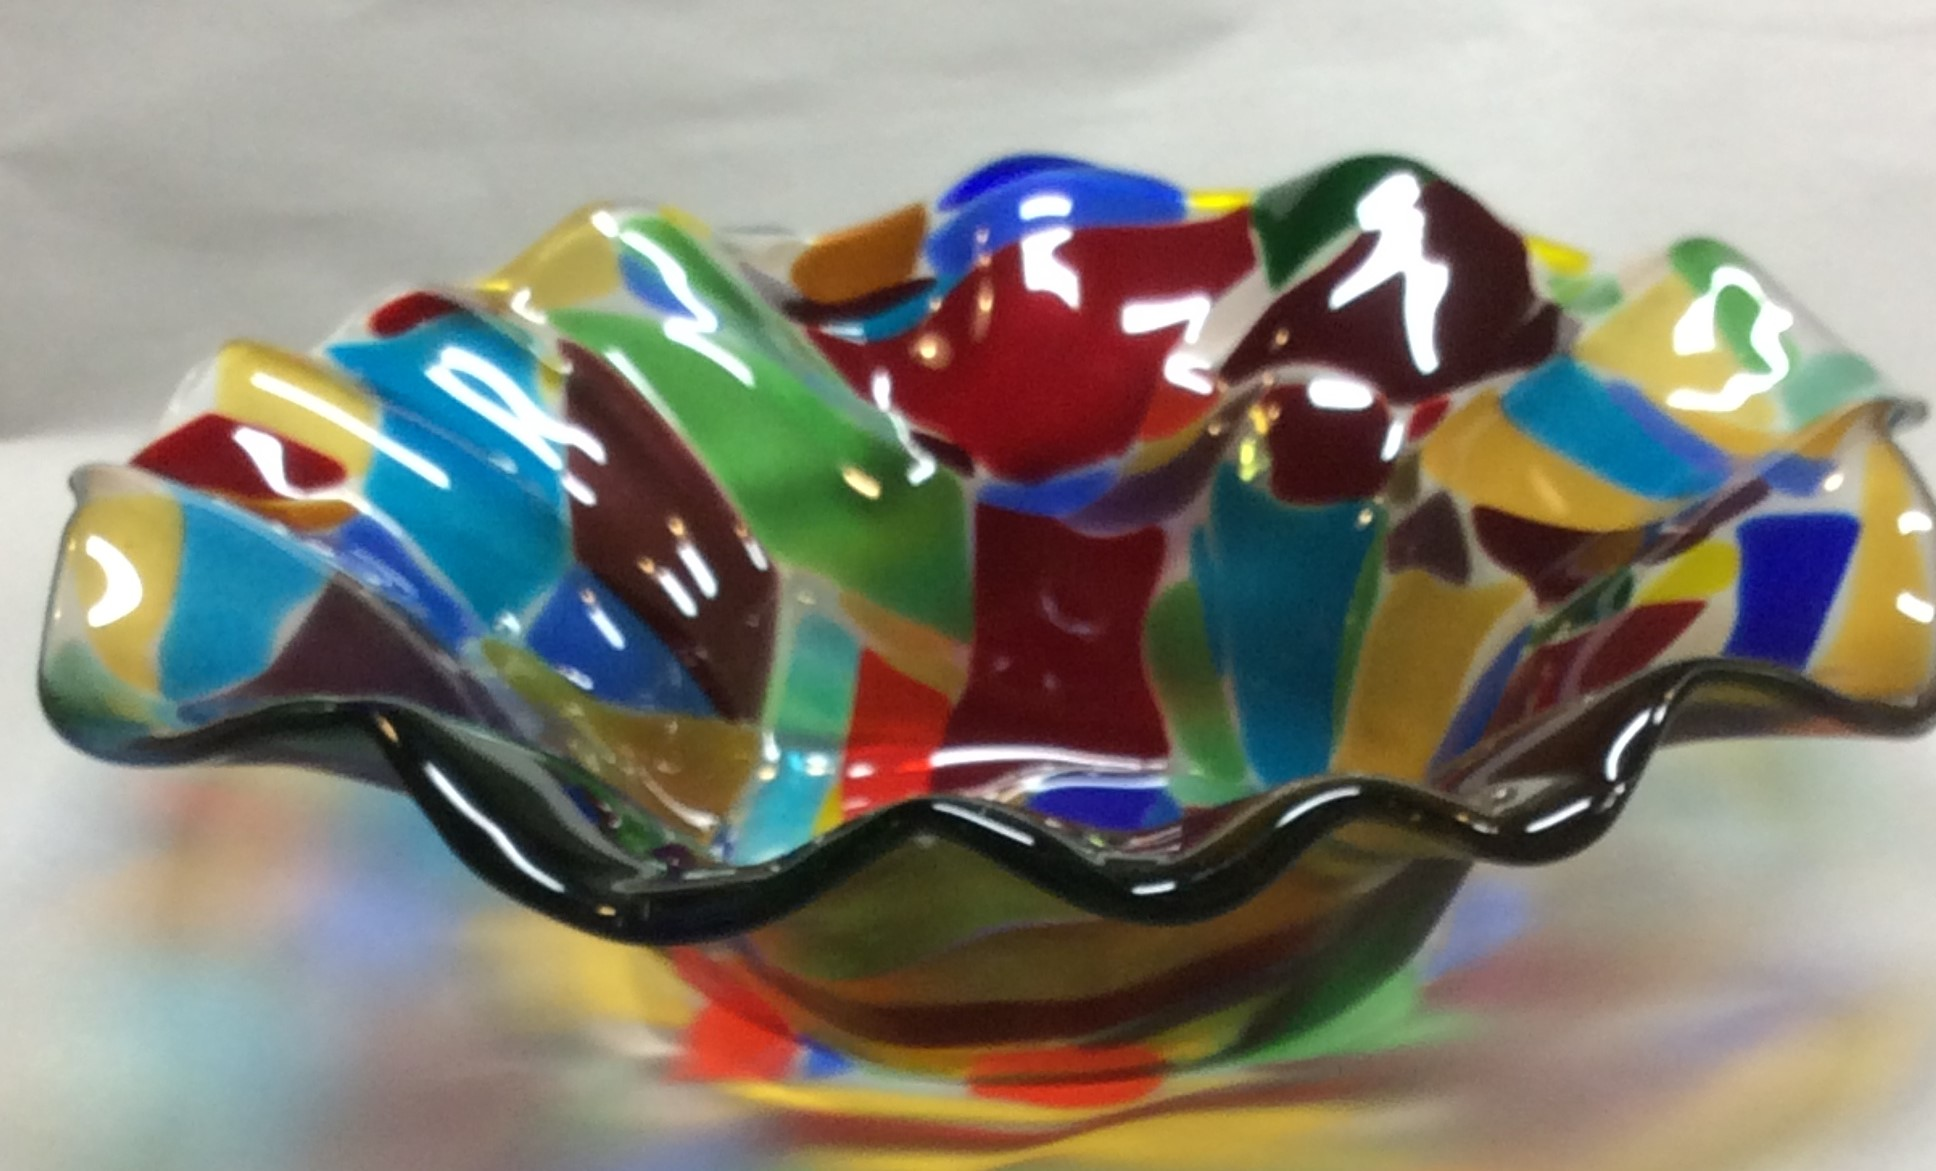 mosaic-bowl-cropped.jpg